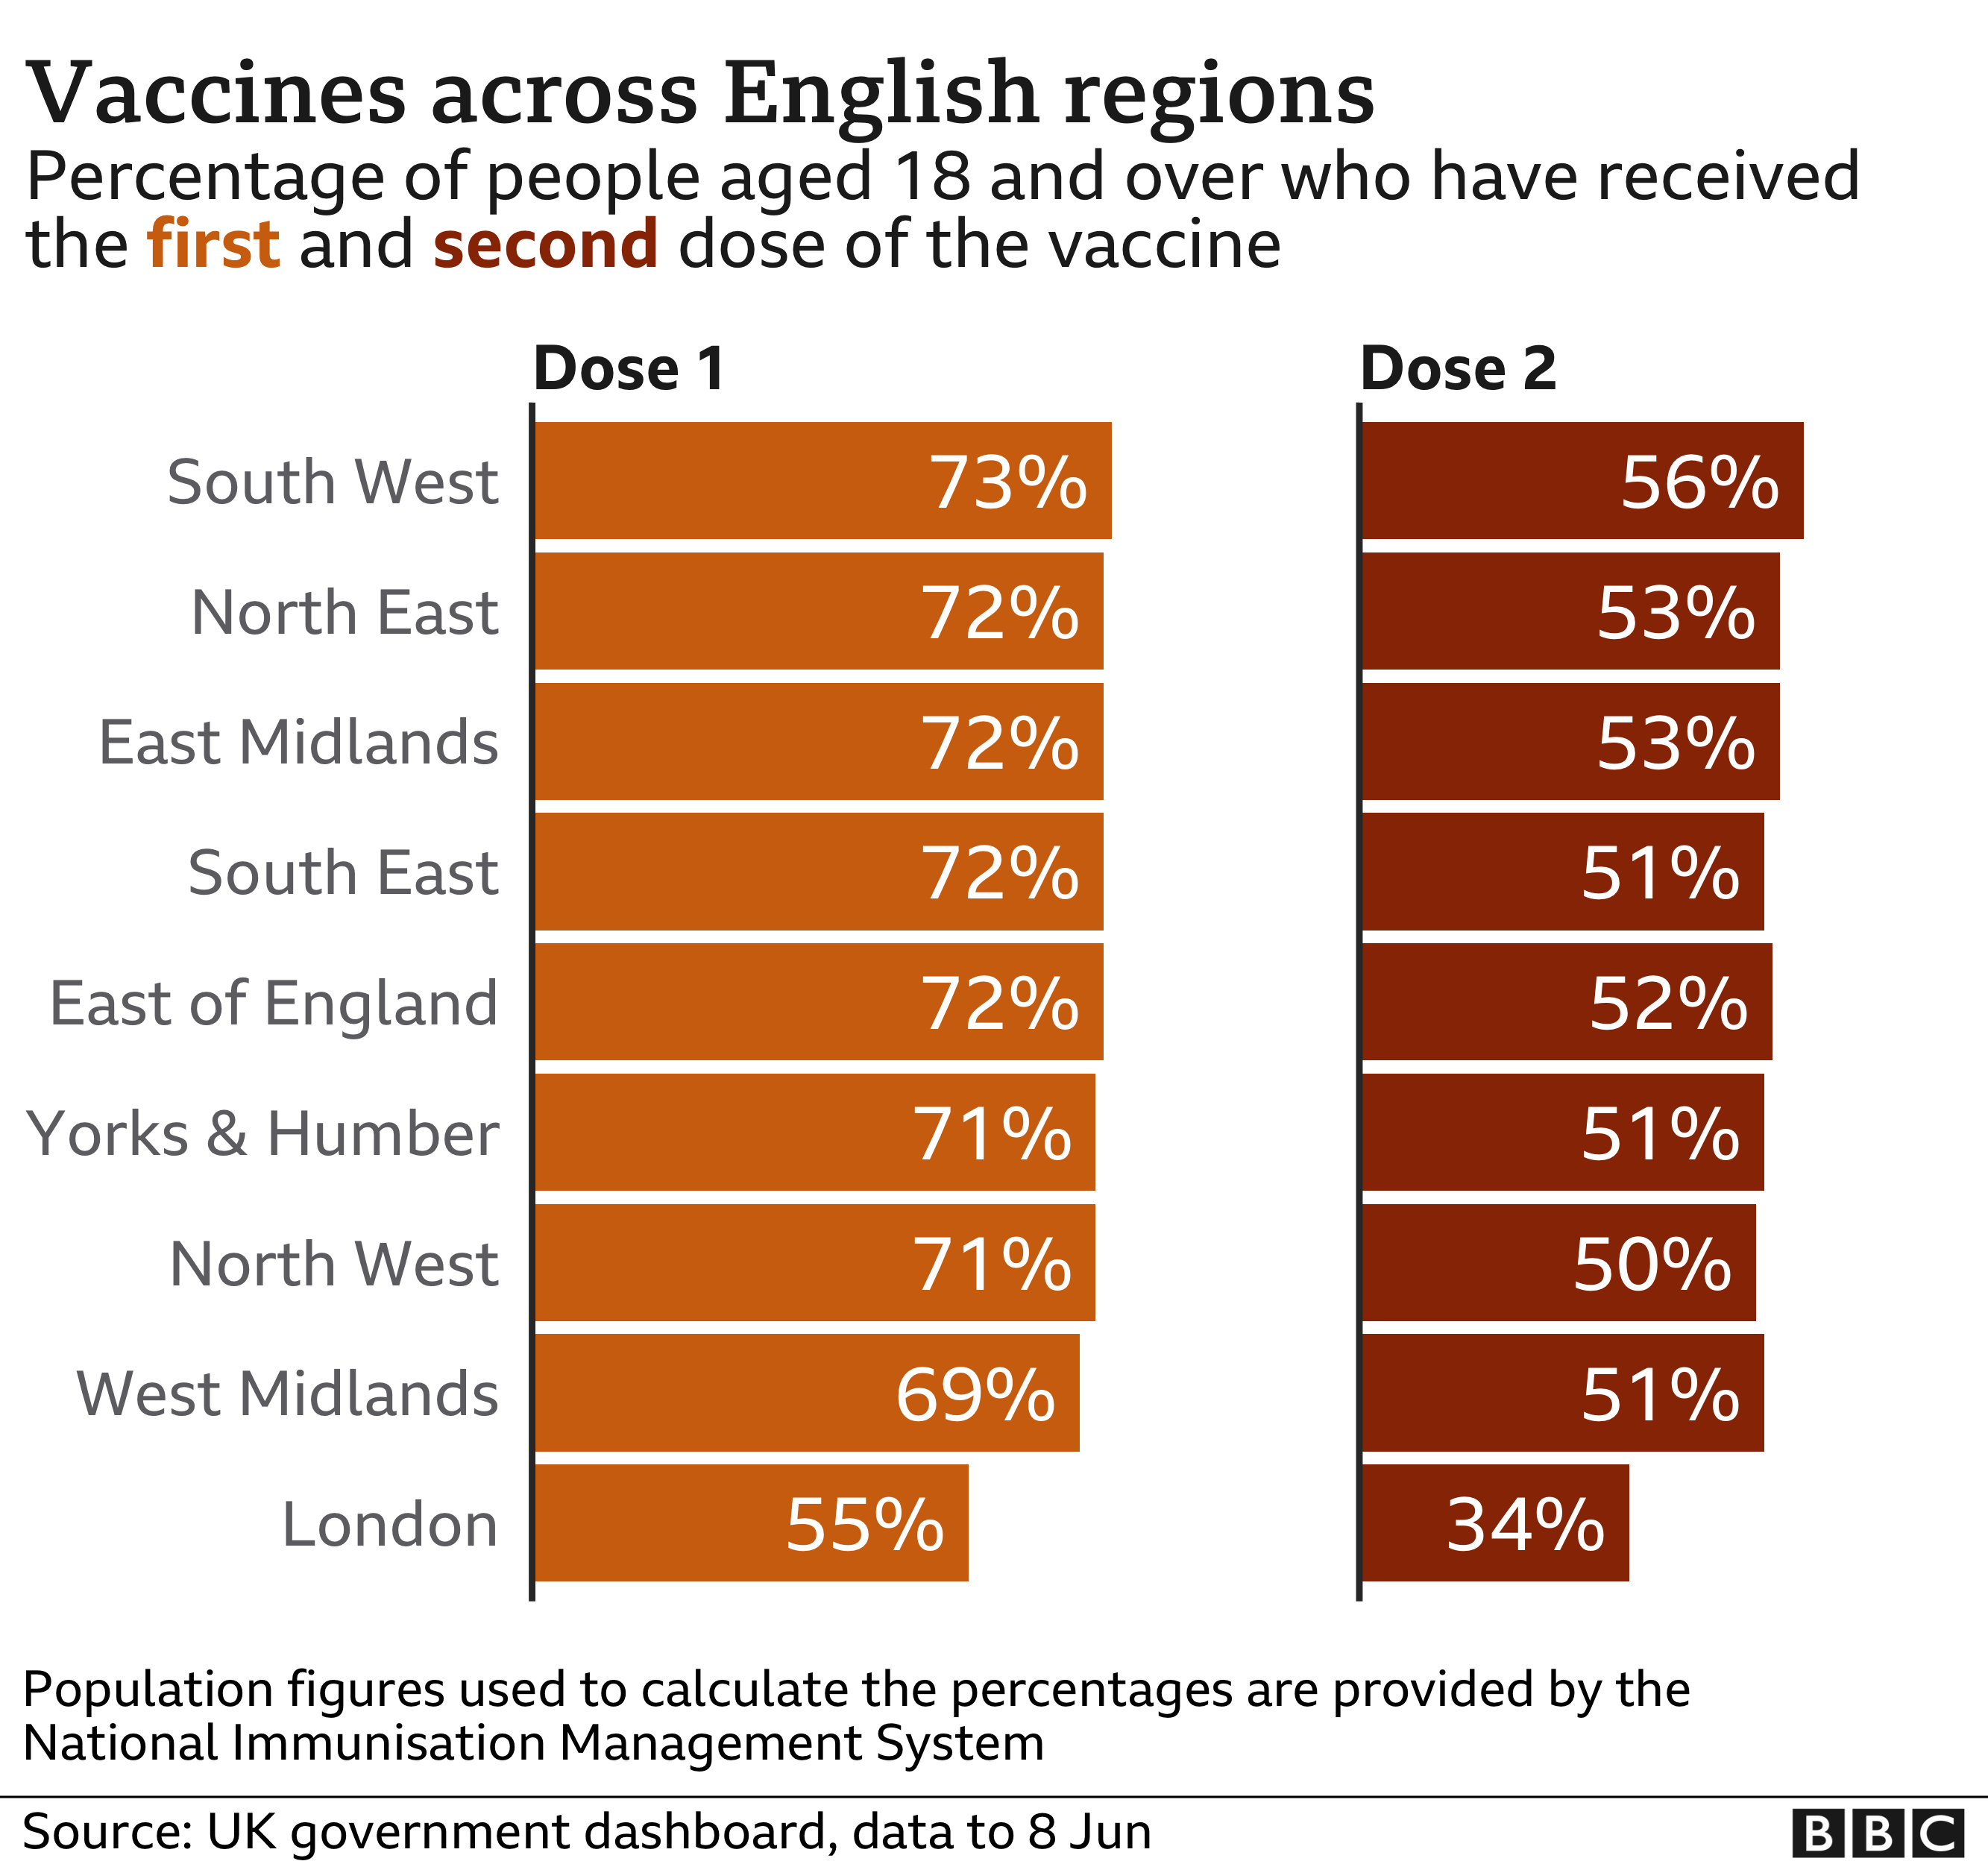 Chart of vaccine take up by English region - 73% of those aged 18 or over in the South West have received one dose of the vaccine, compared with 55% in London